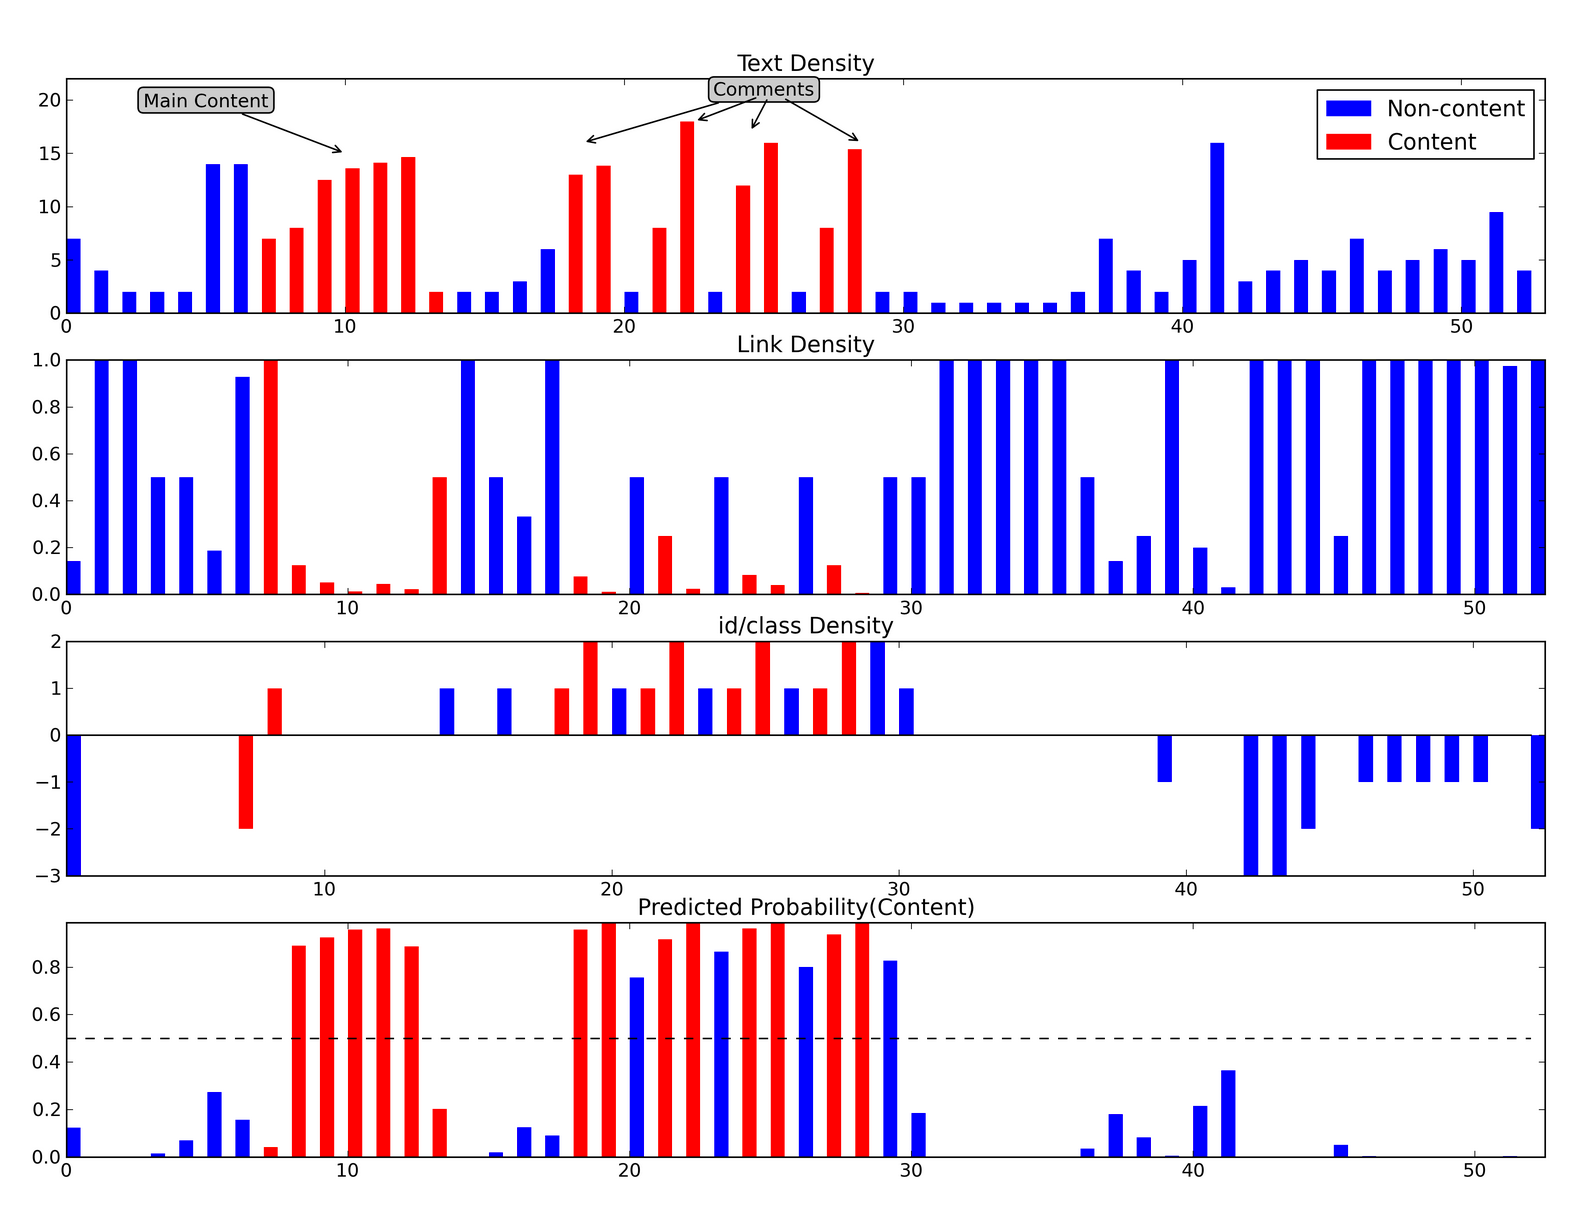 Visualization of model features the sample blog post.  Each vertical bar represents one block from the page, with content blocks colored red and non-content blocks colored blue.  Top panel: the text density of the block.  Second panel: the link density of the block.  Third panel: the sum of id/class feature attributes for the block.  Bottom panel: the predicted probability of content.